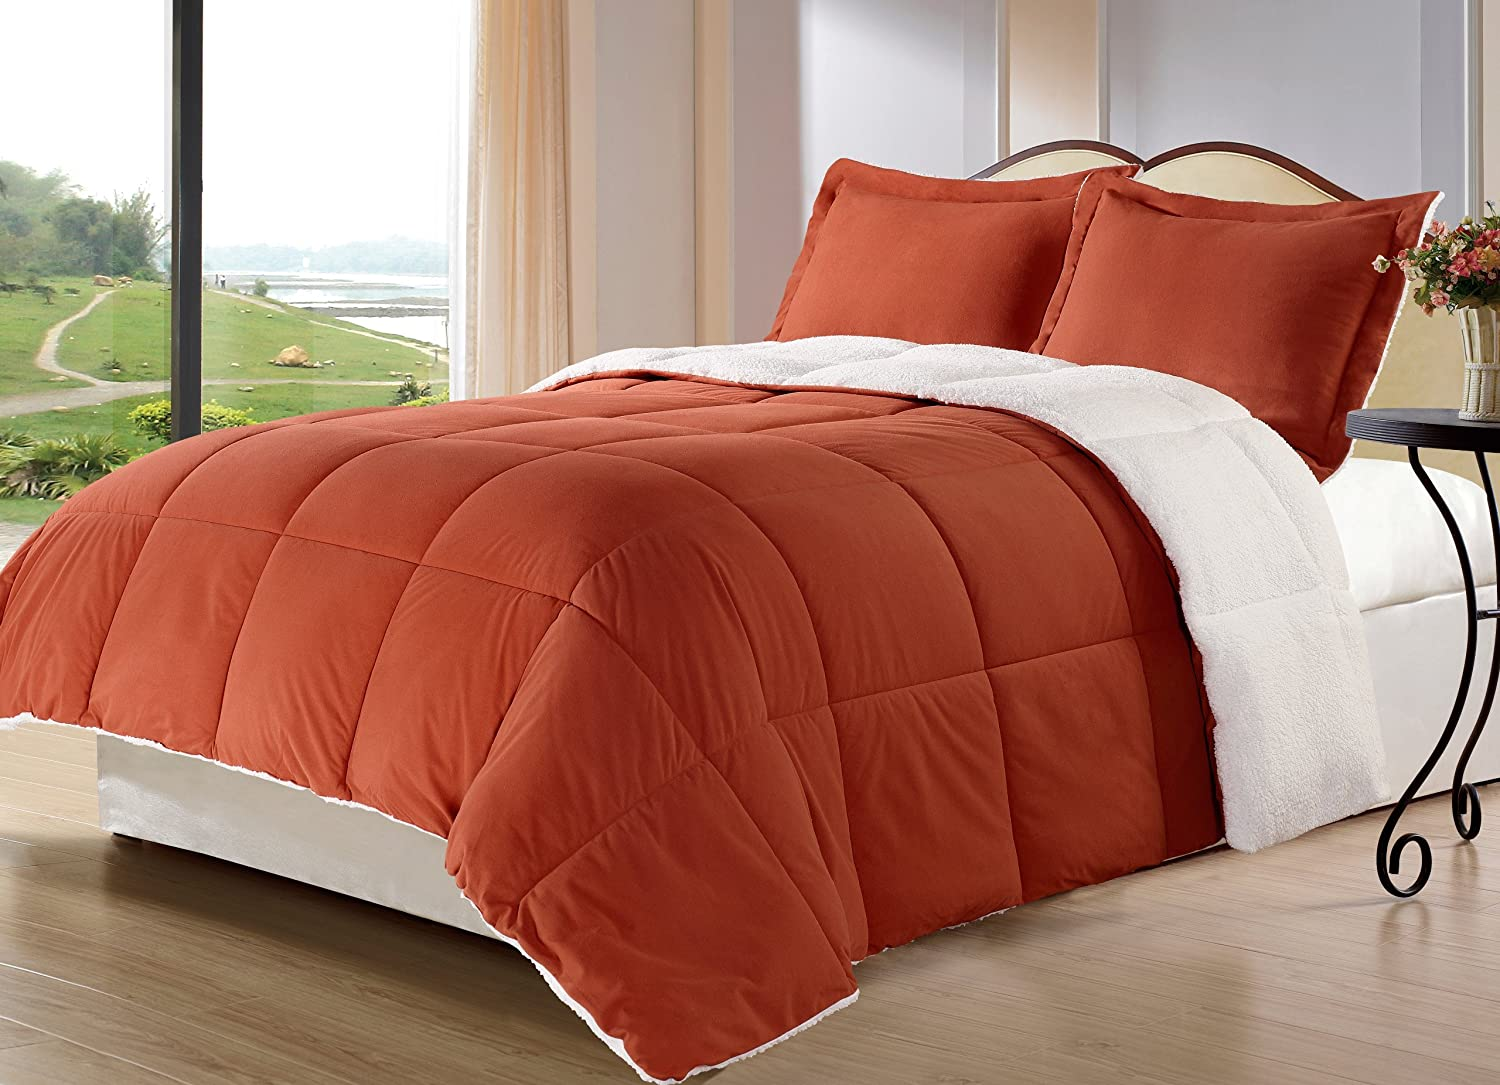 2-Piece Down Alternative Mini Comforter Set